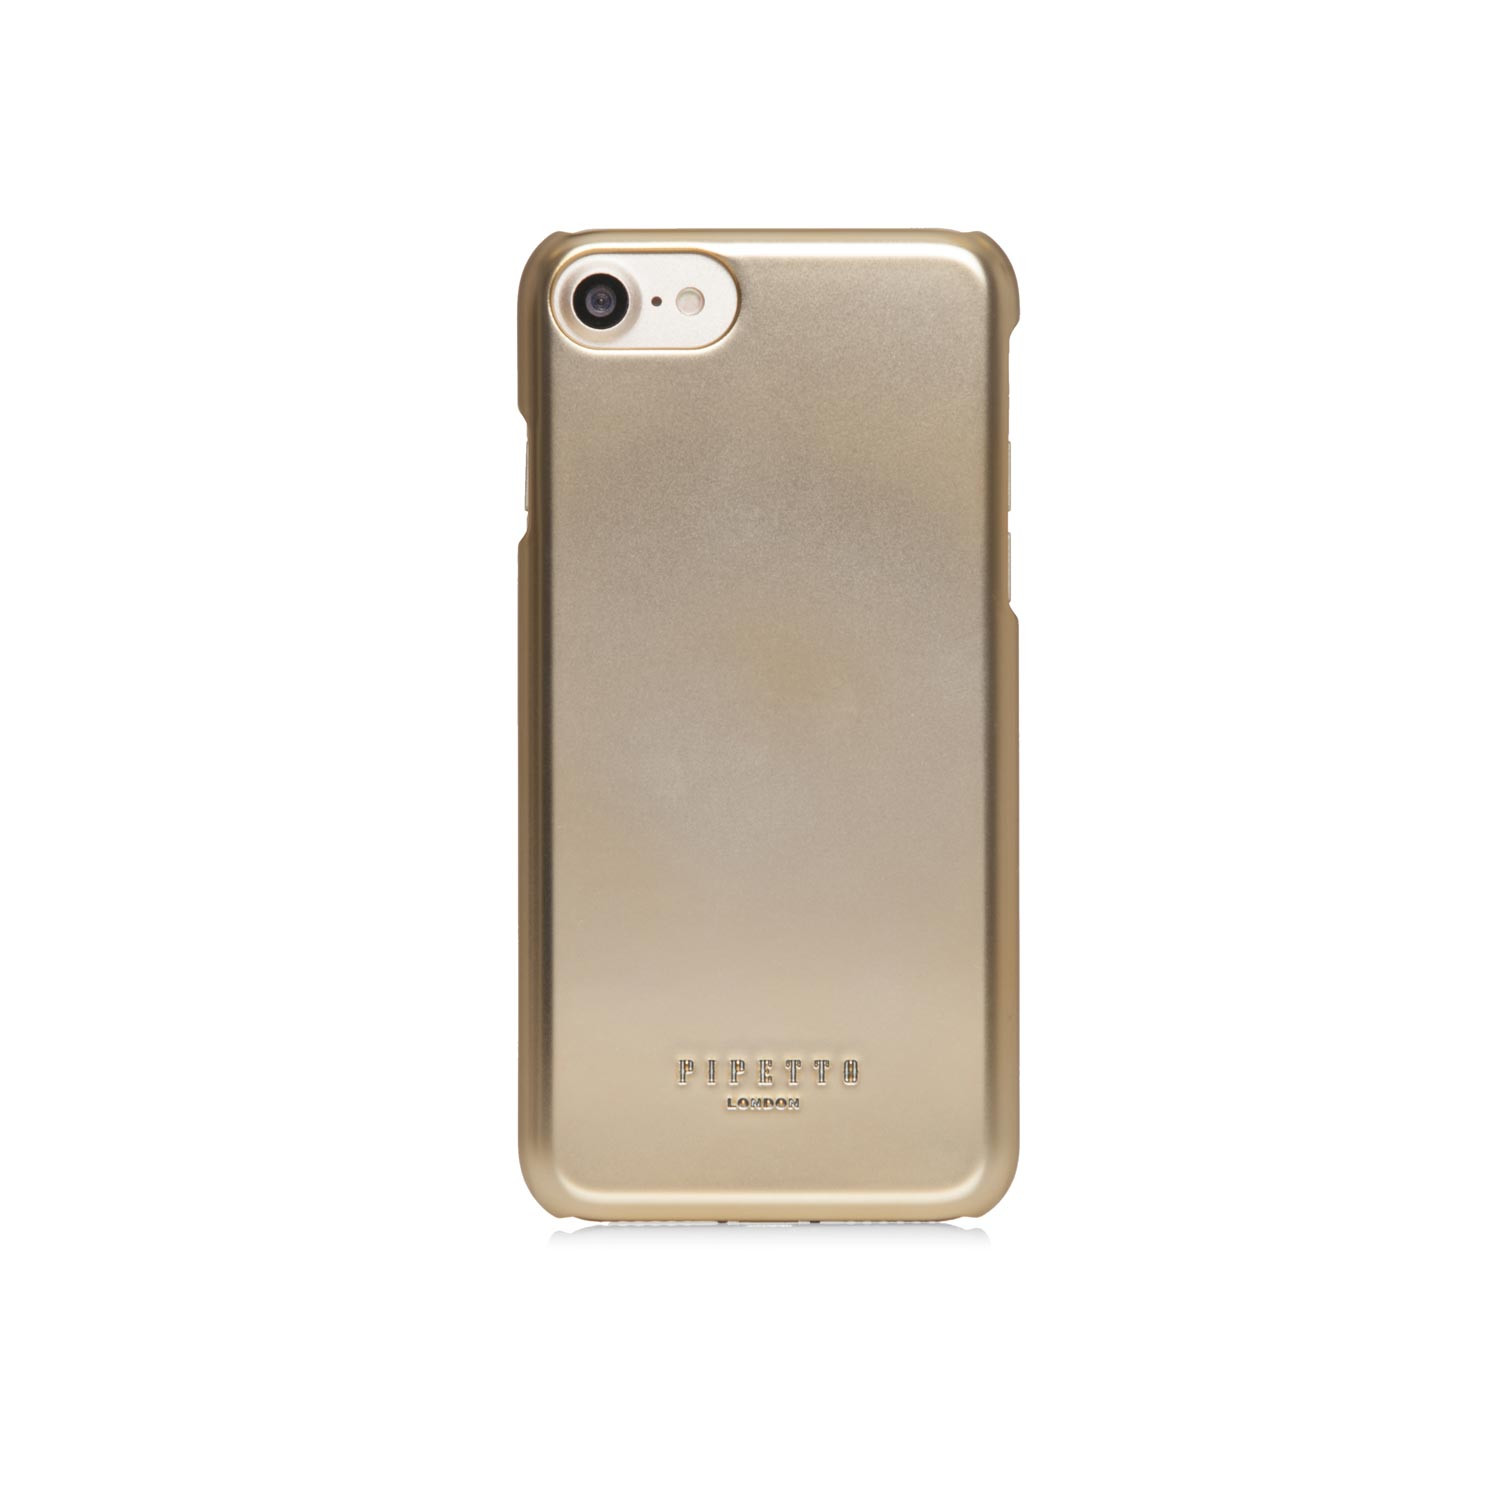 buy online 38512 d0e5e iPhone 7 Case Magnetic Shell - Gold (Also Fits iPhone 6/6S/8)